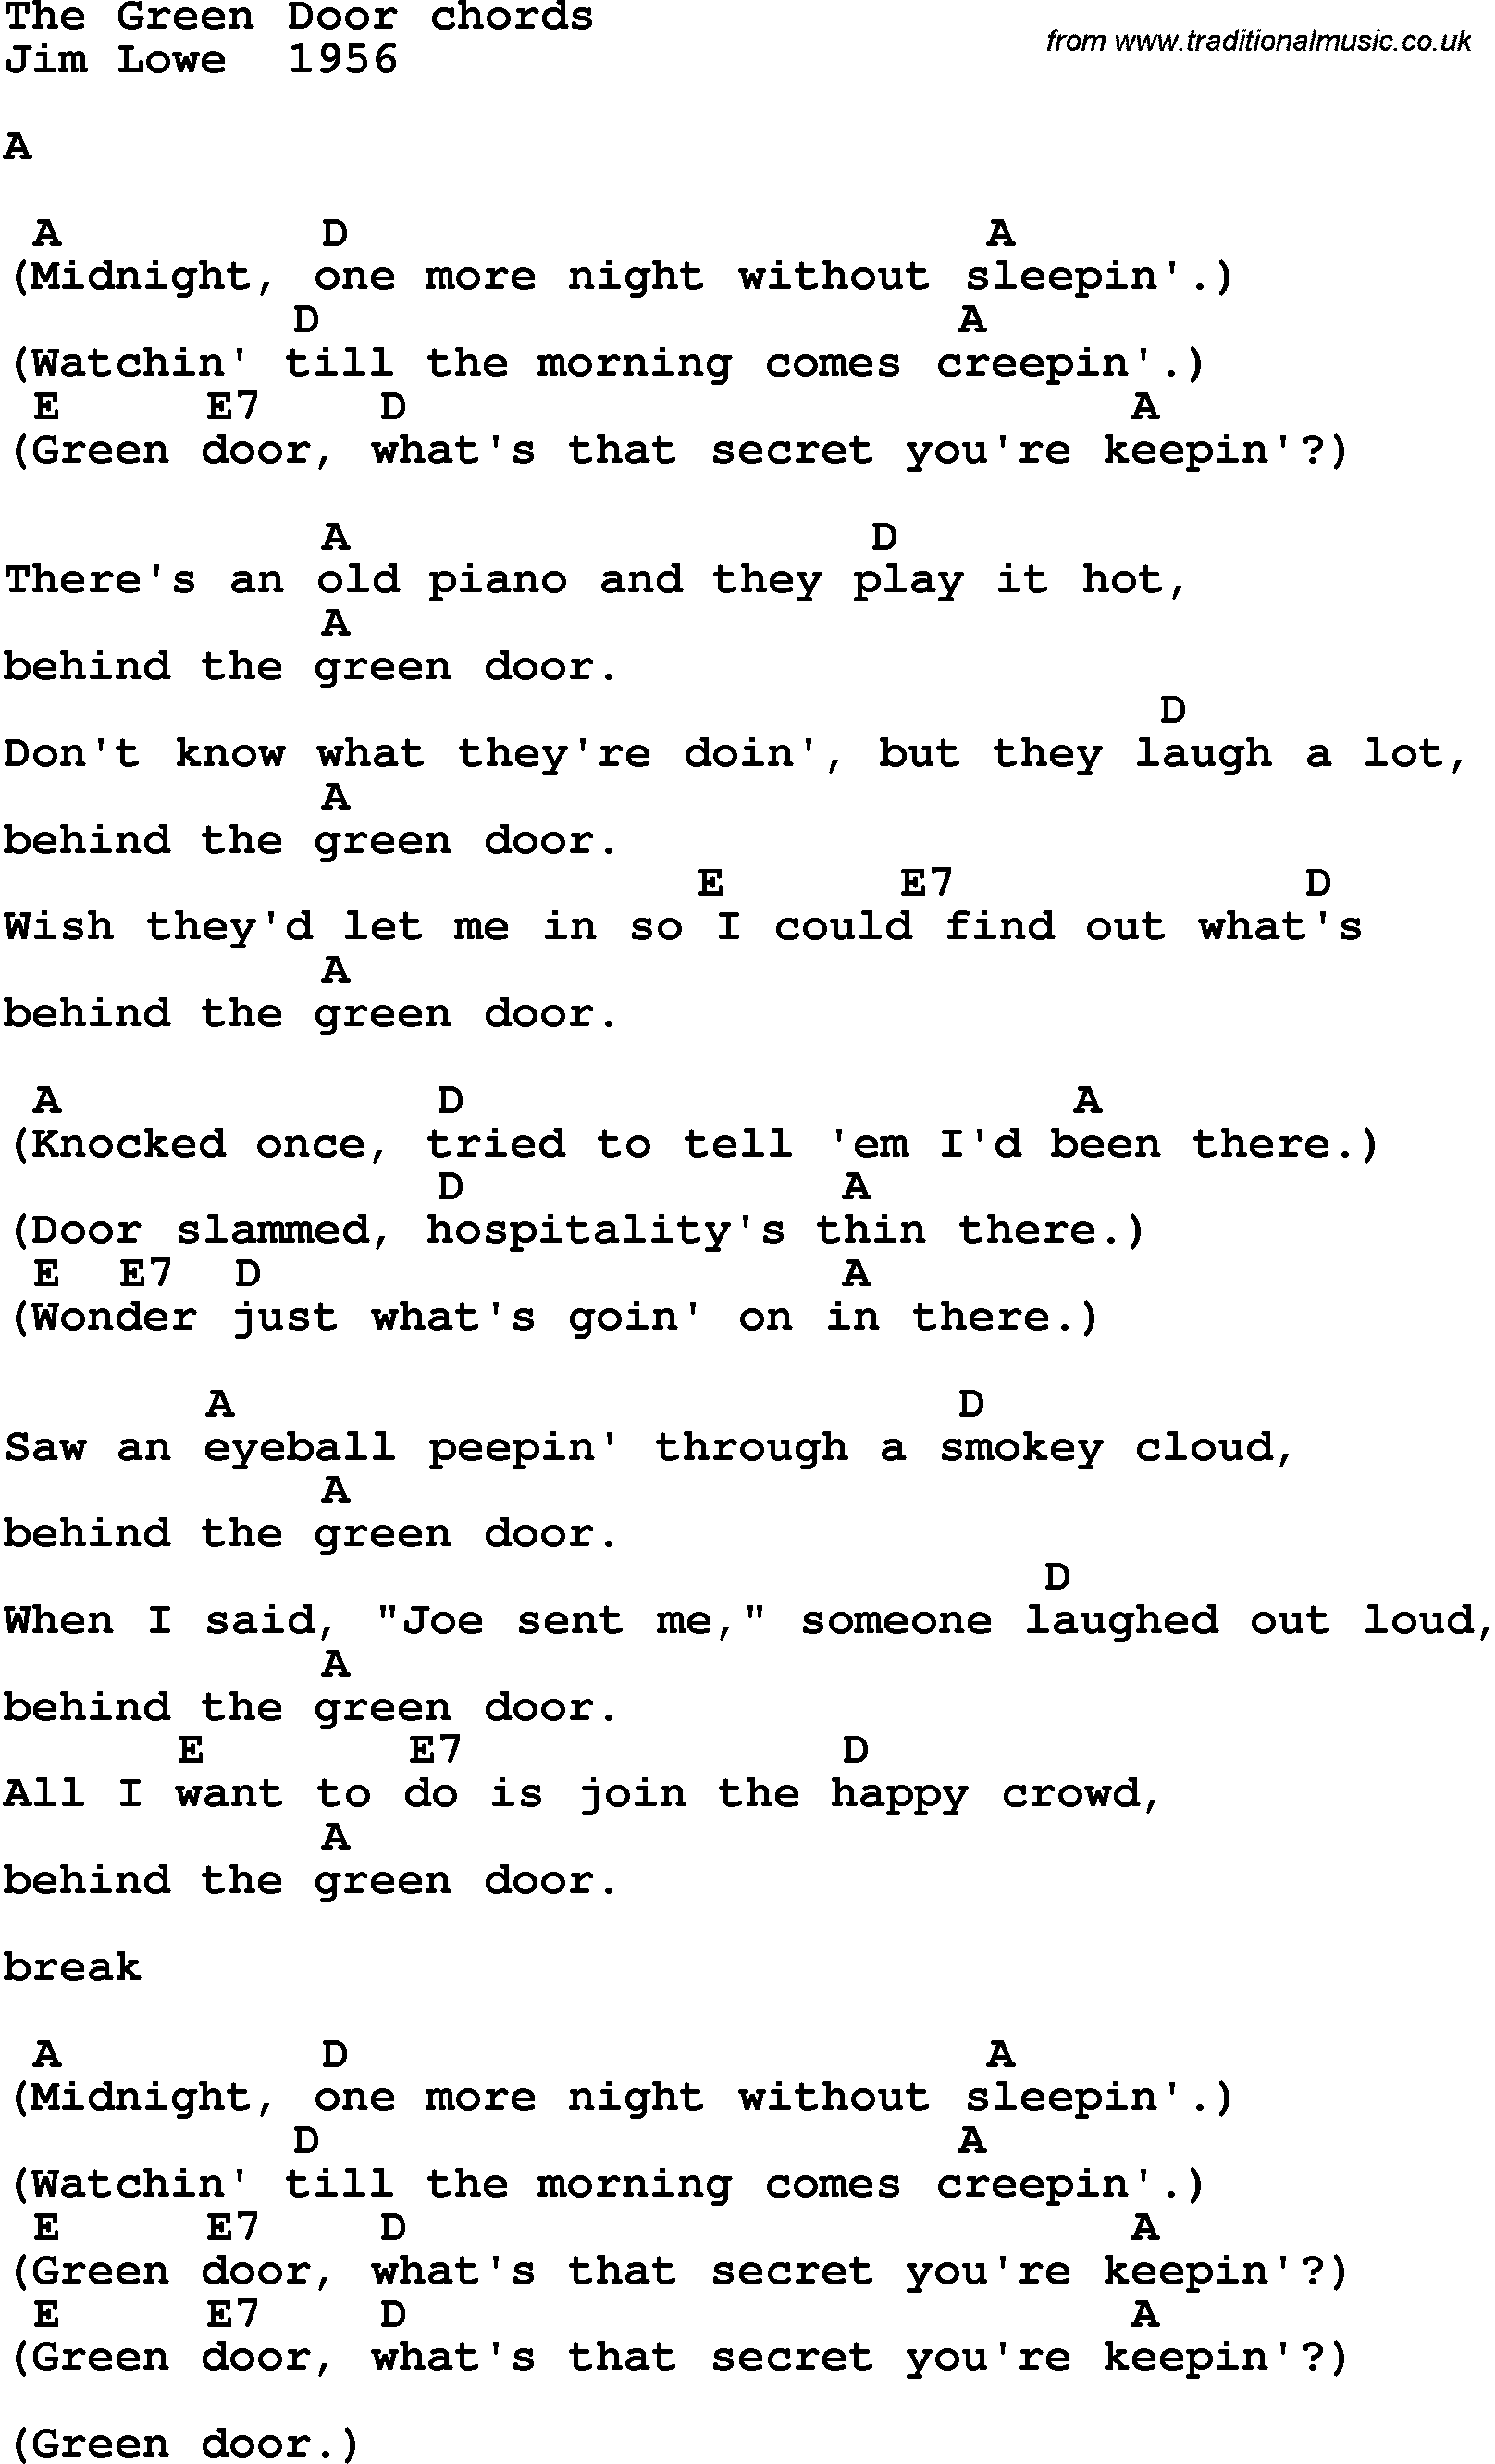 sc 1 st  Traditional Music Library & Song lyrics with guitar chords for The Green Door - Jim Lowe 1956